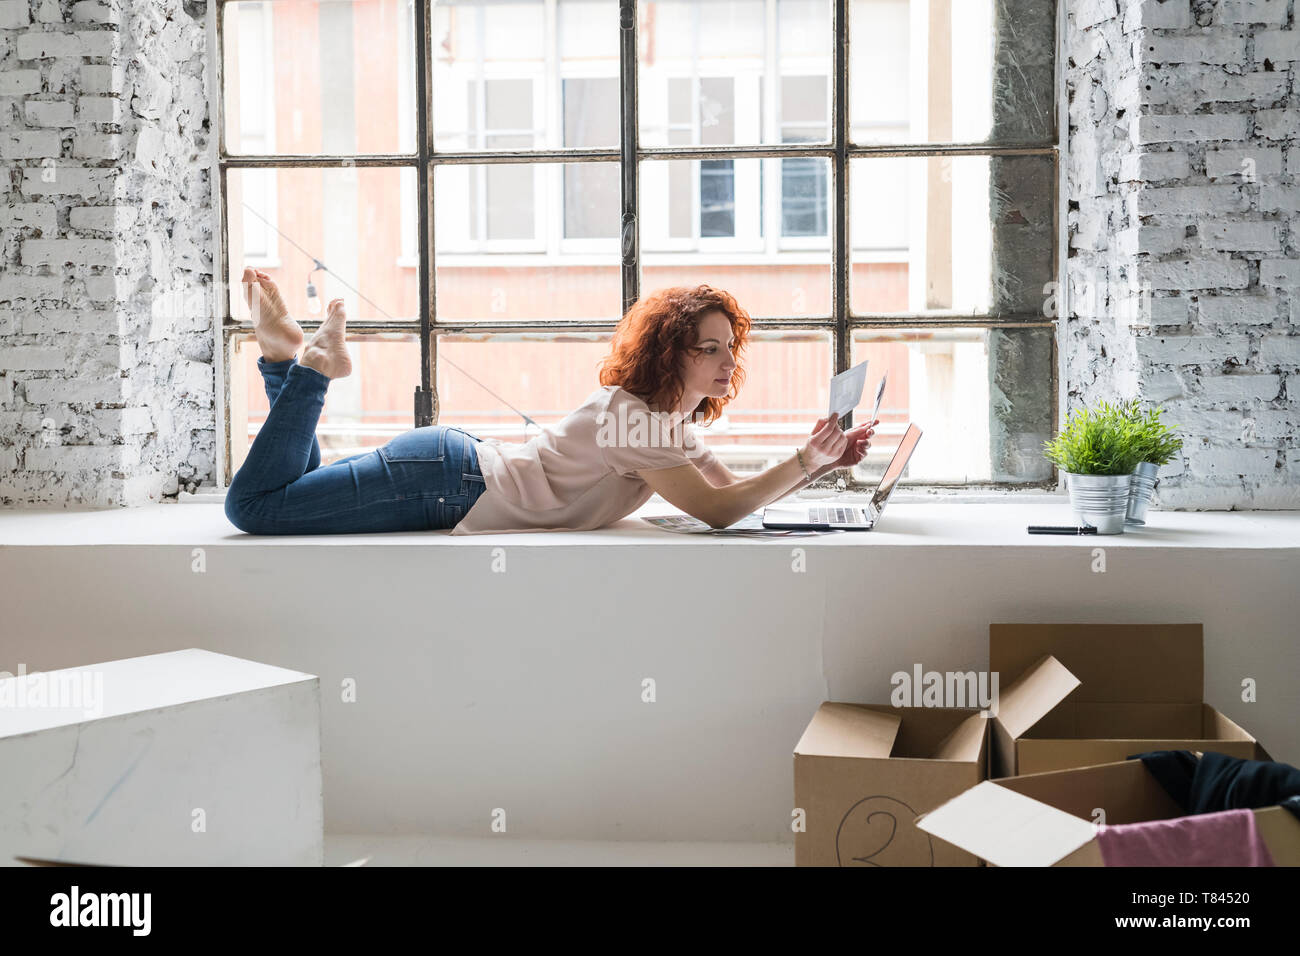 Mid adult woman moving into industrial style apartment, lying on window ledge looking at photograph - Stock Image